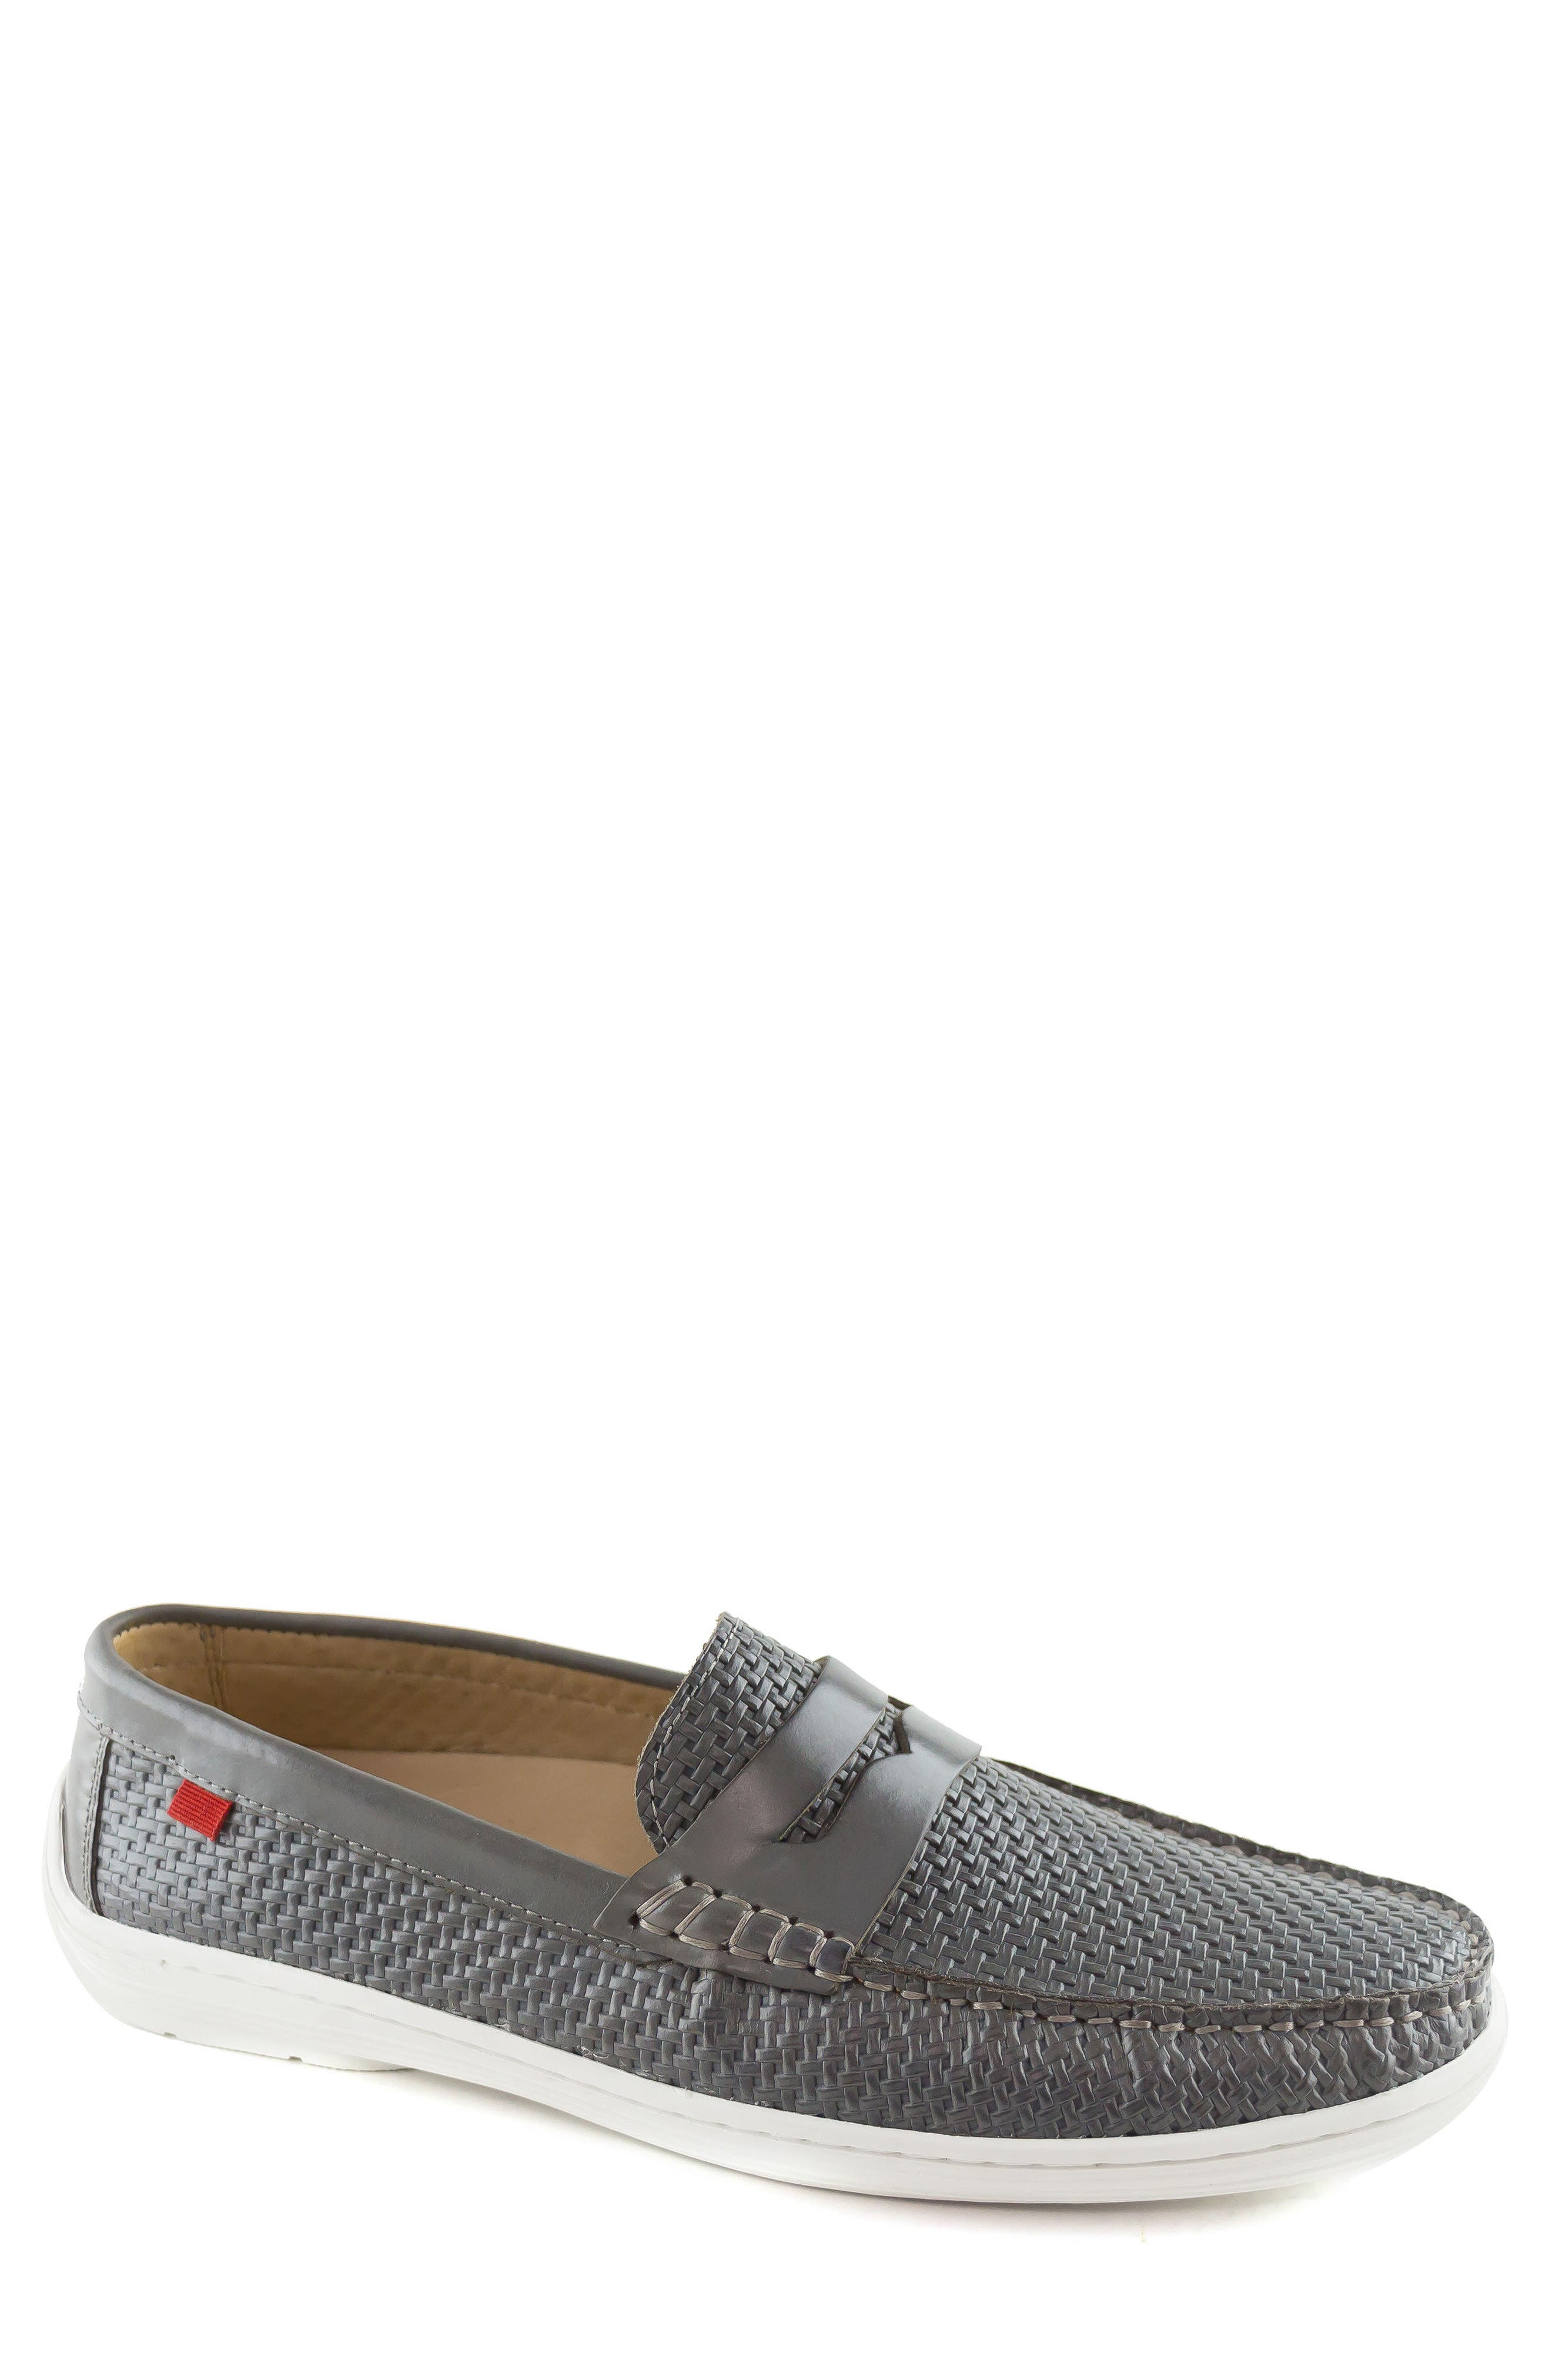 Atlantic Penny Loafer,                         Main,                         color, Grey Leather